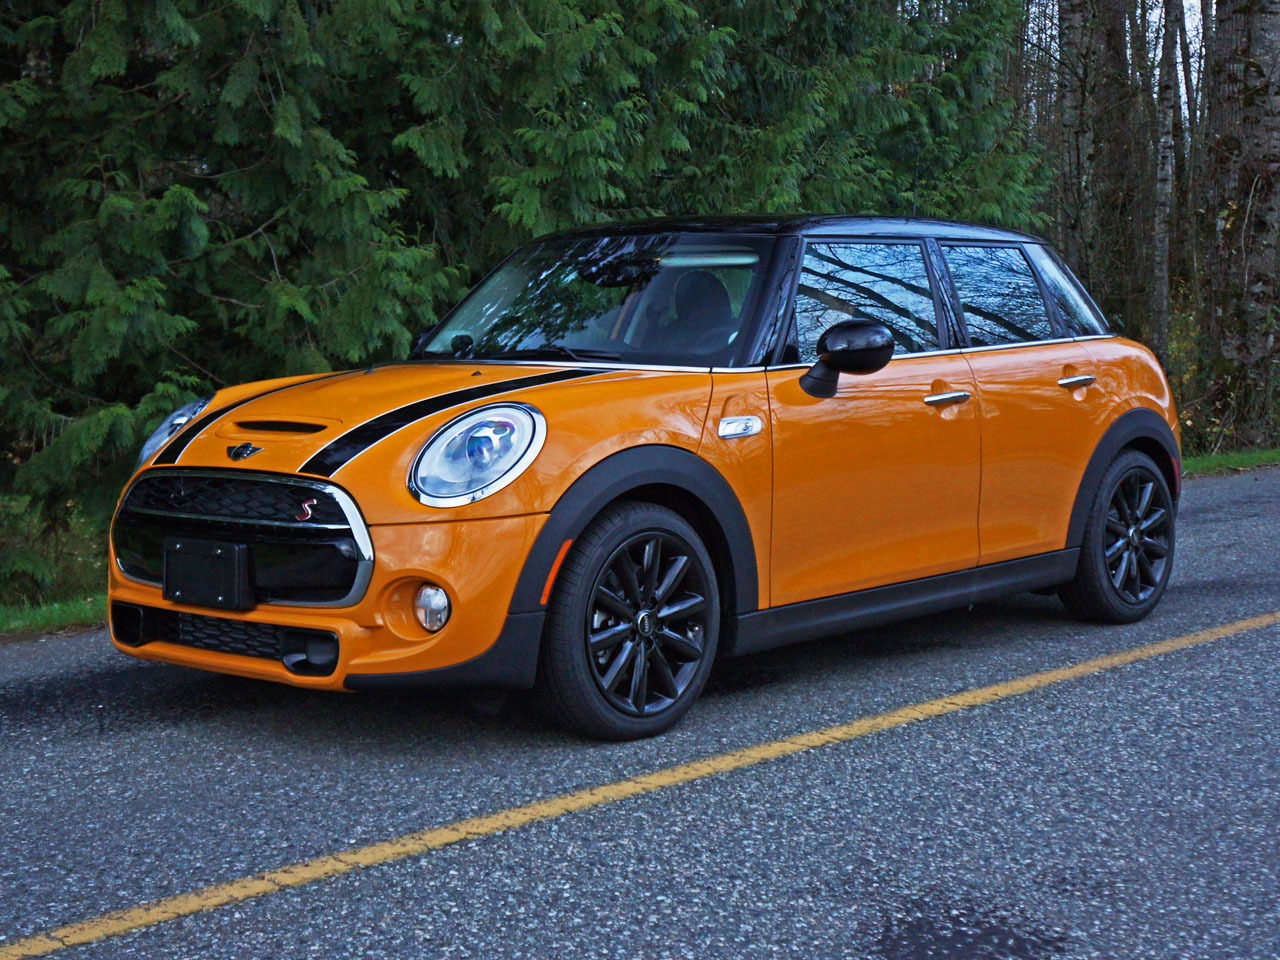 2015 Mini Cooper S 5 Door Road Test Review Carcostcanada